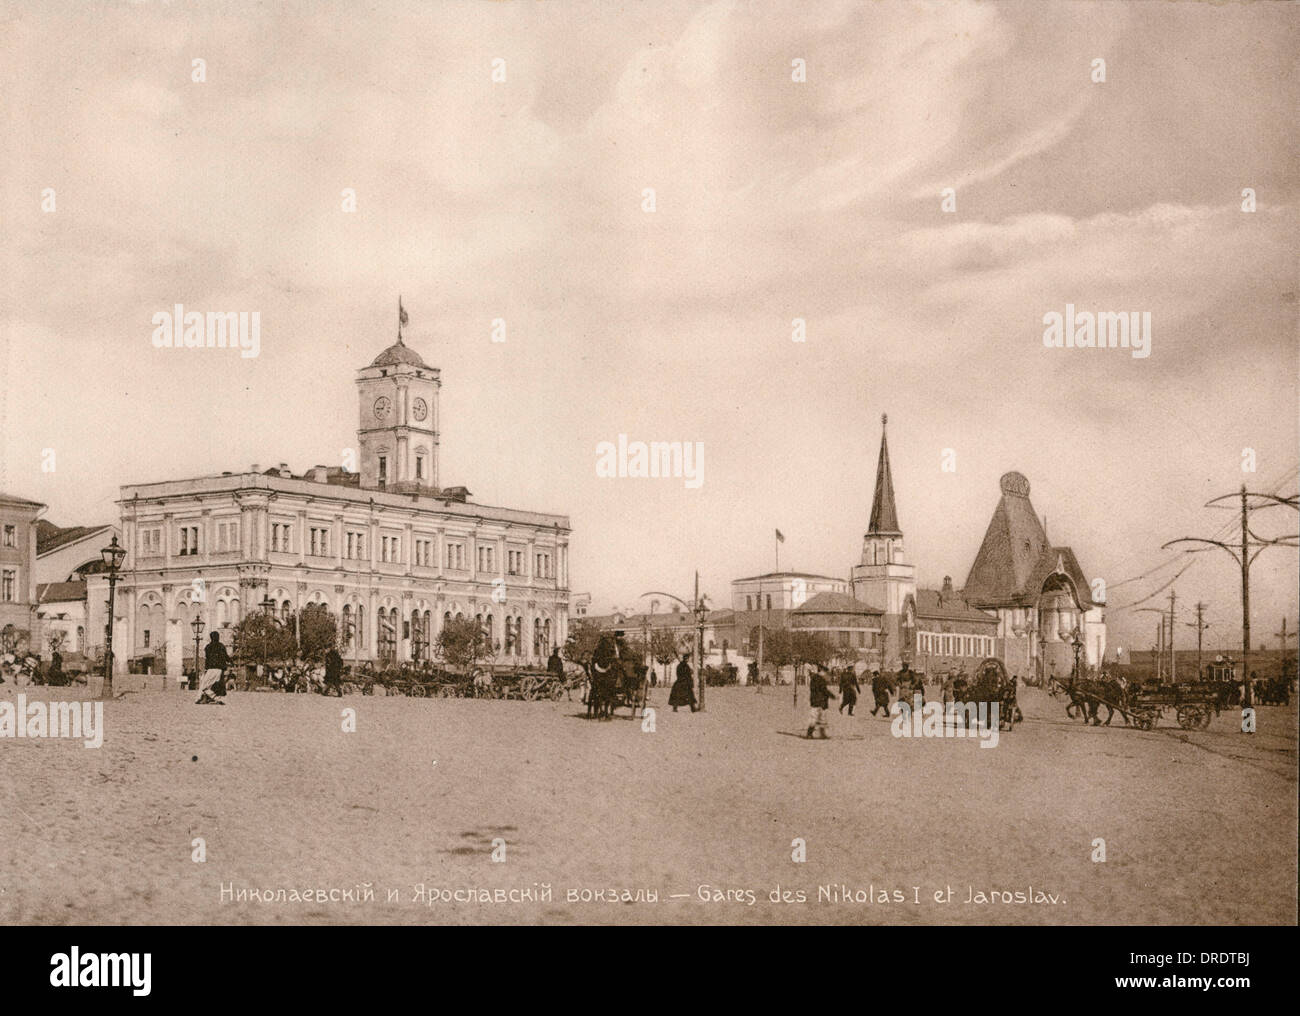 Nikolai I and Yaroslavl Stations in Moscow, Russia - Stock Image